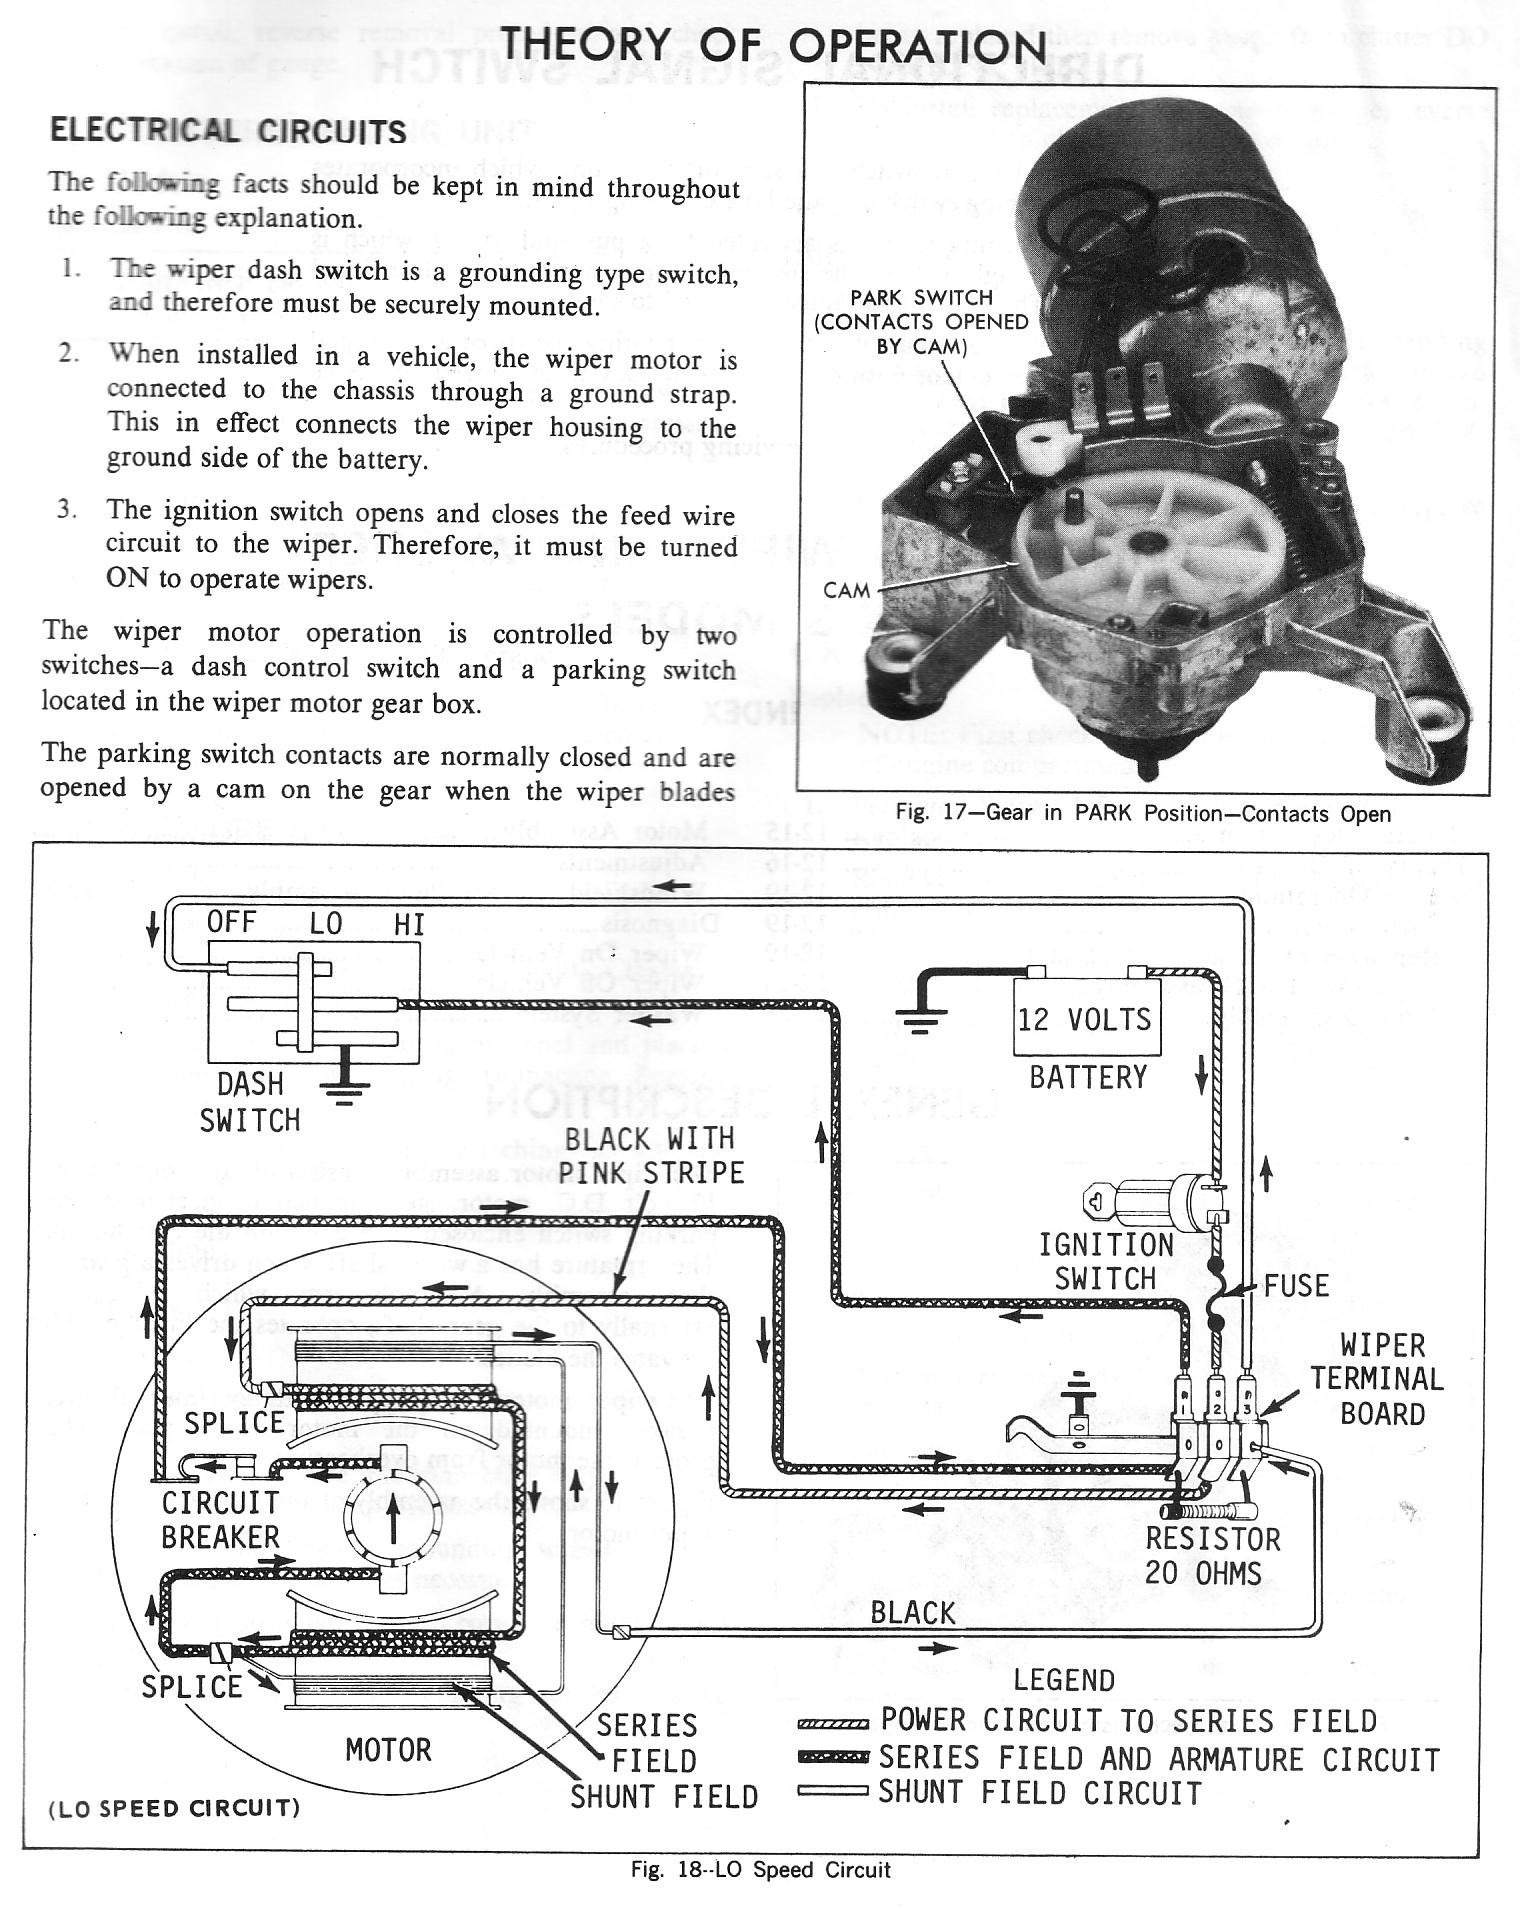 67 camaro wiring harness diagram 1996 jeep grand cherokee stereo windshield wiper library